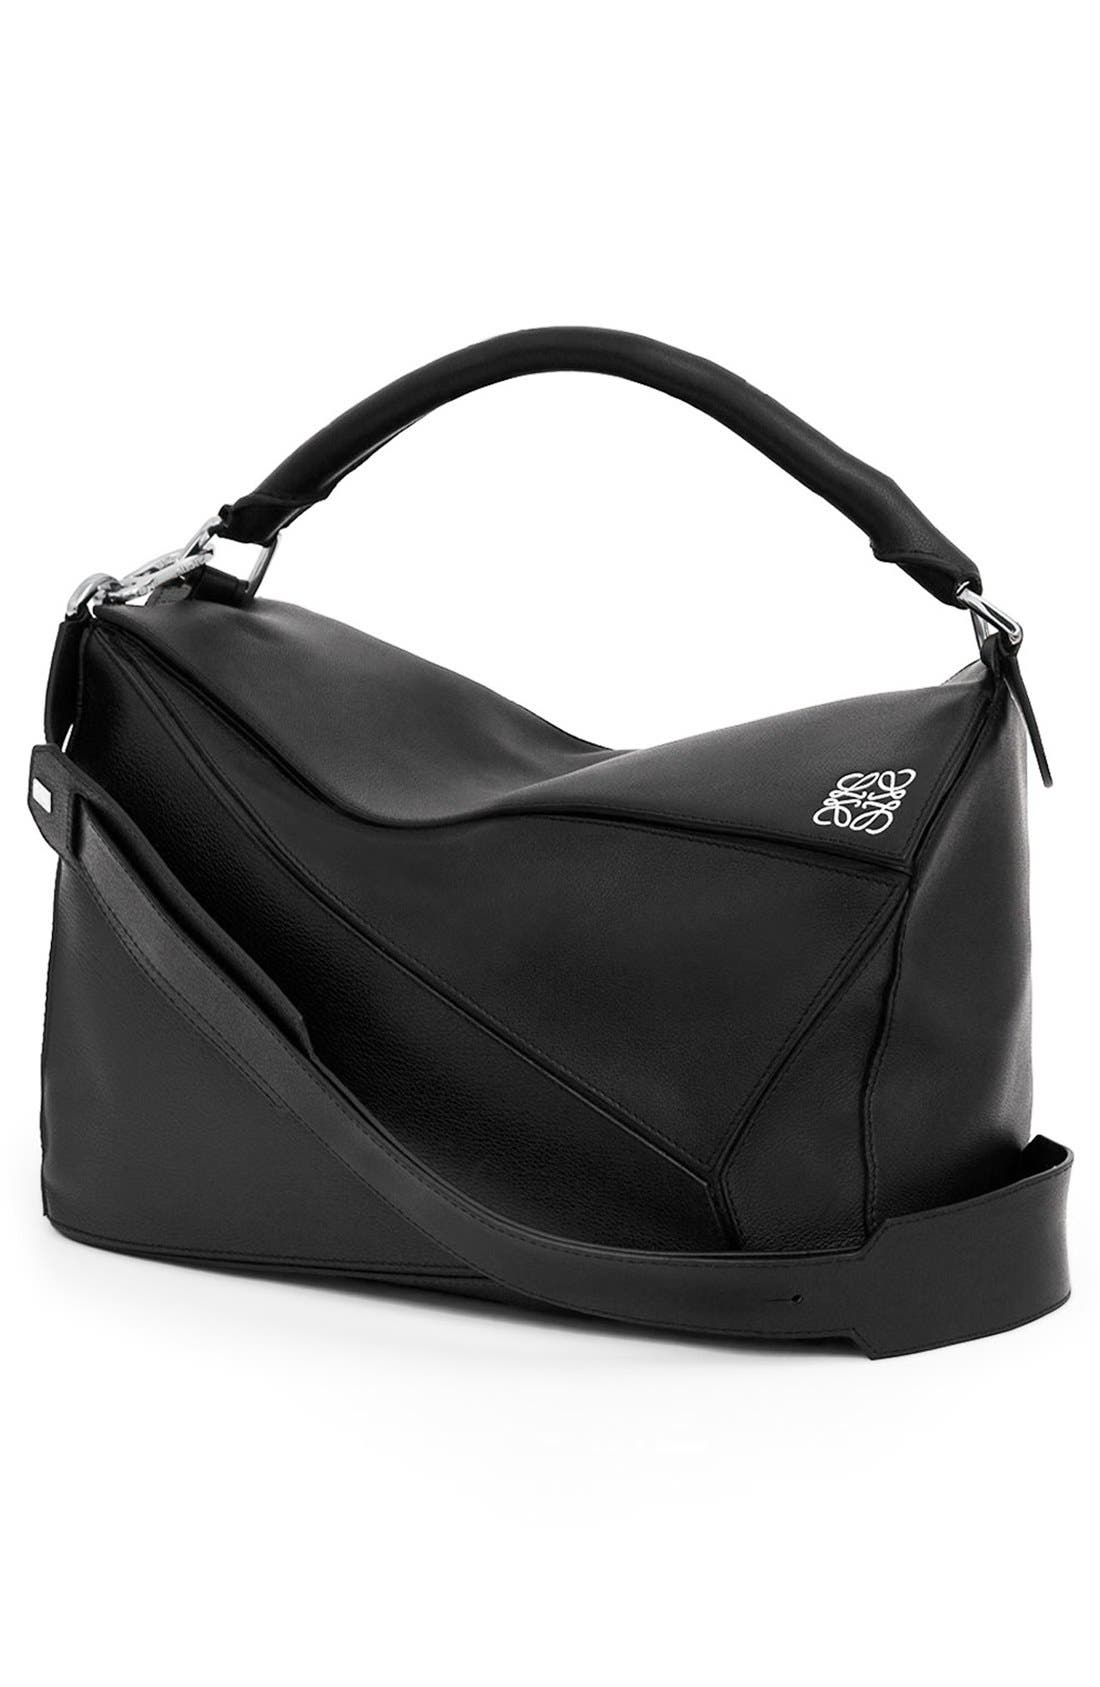 Main Image - Loewe 'Large Puzzle' Calfskin Leather Bag